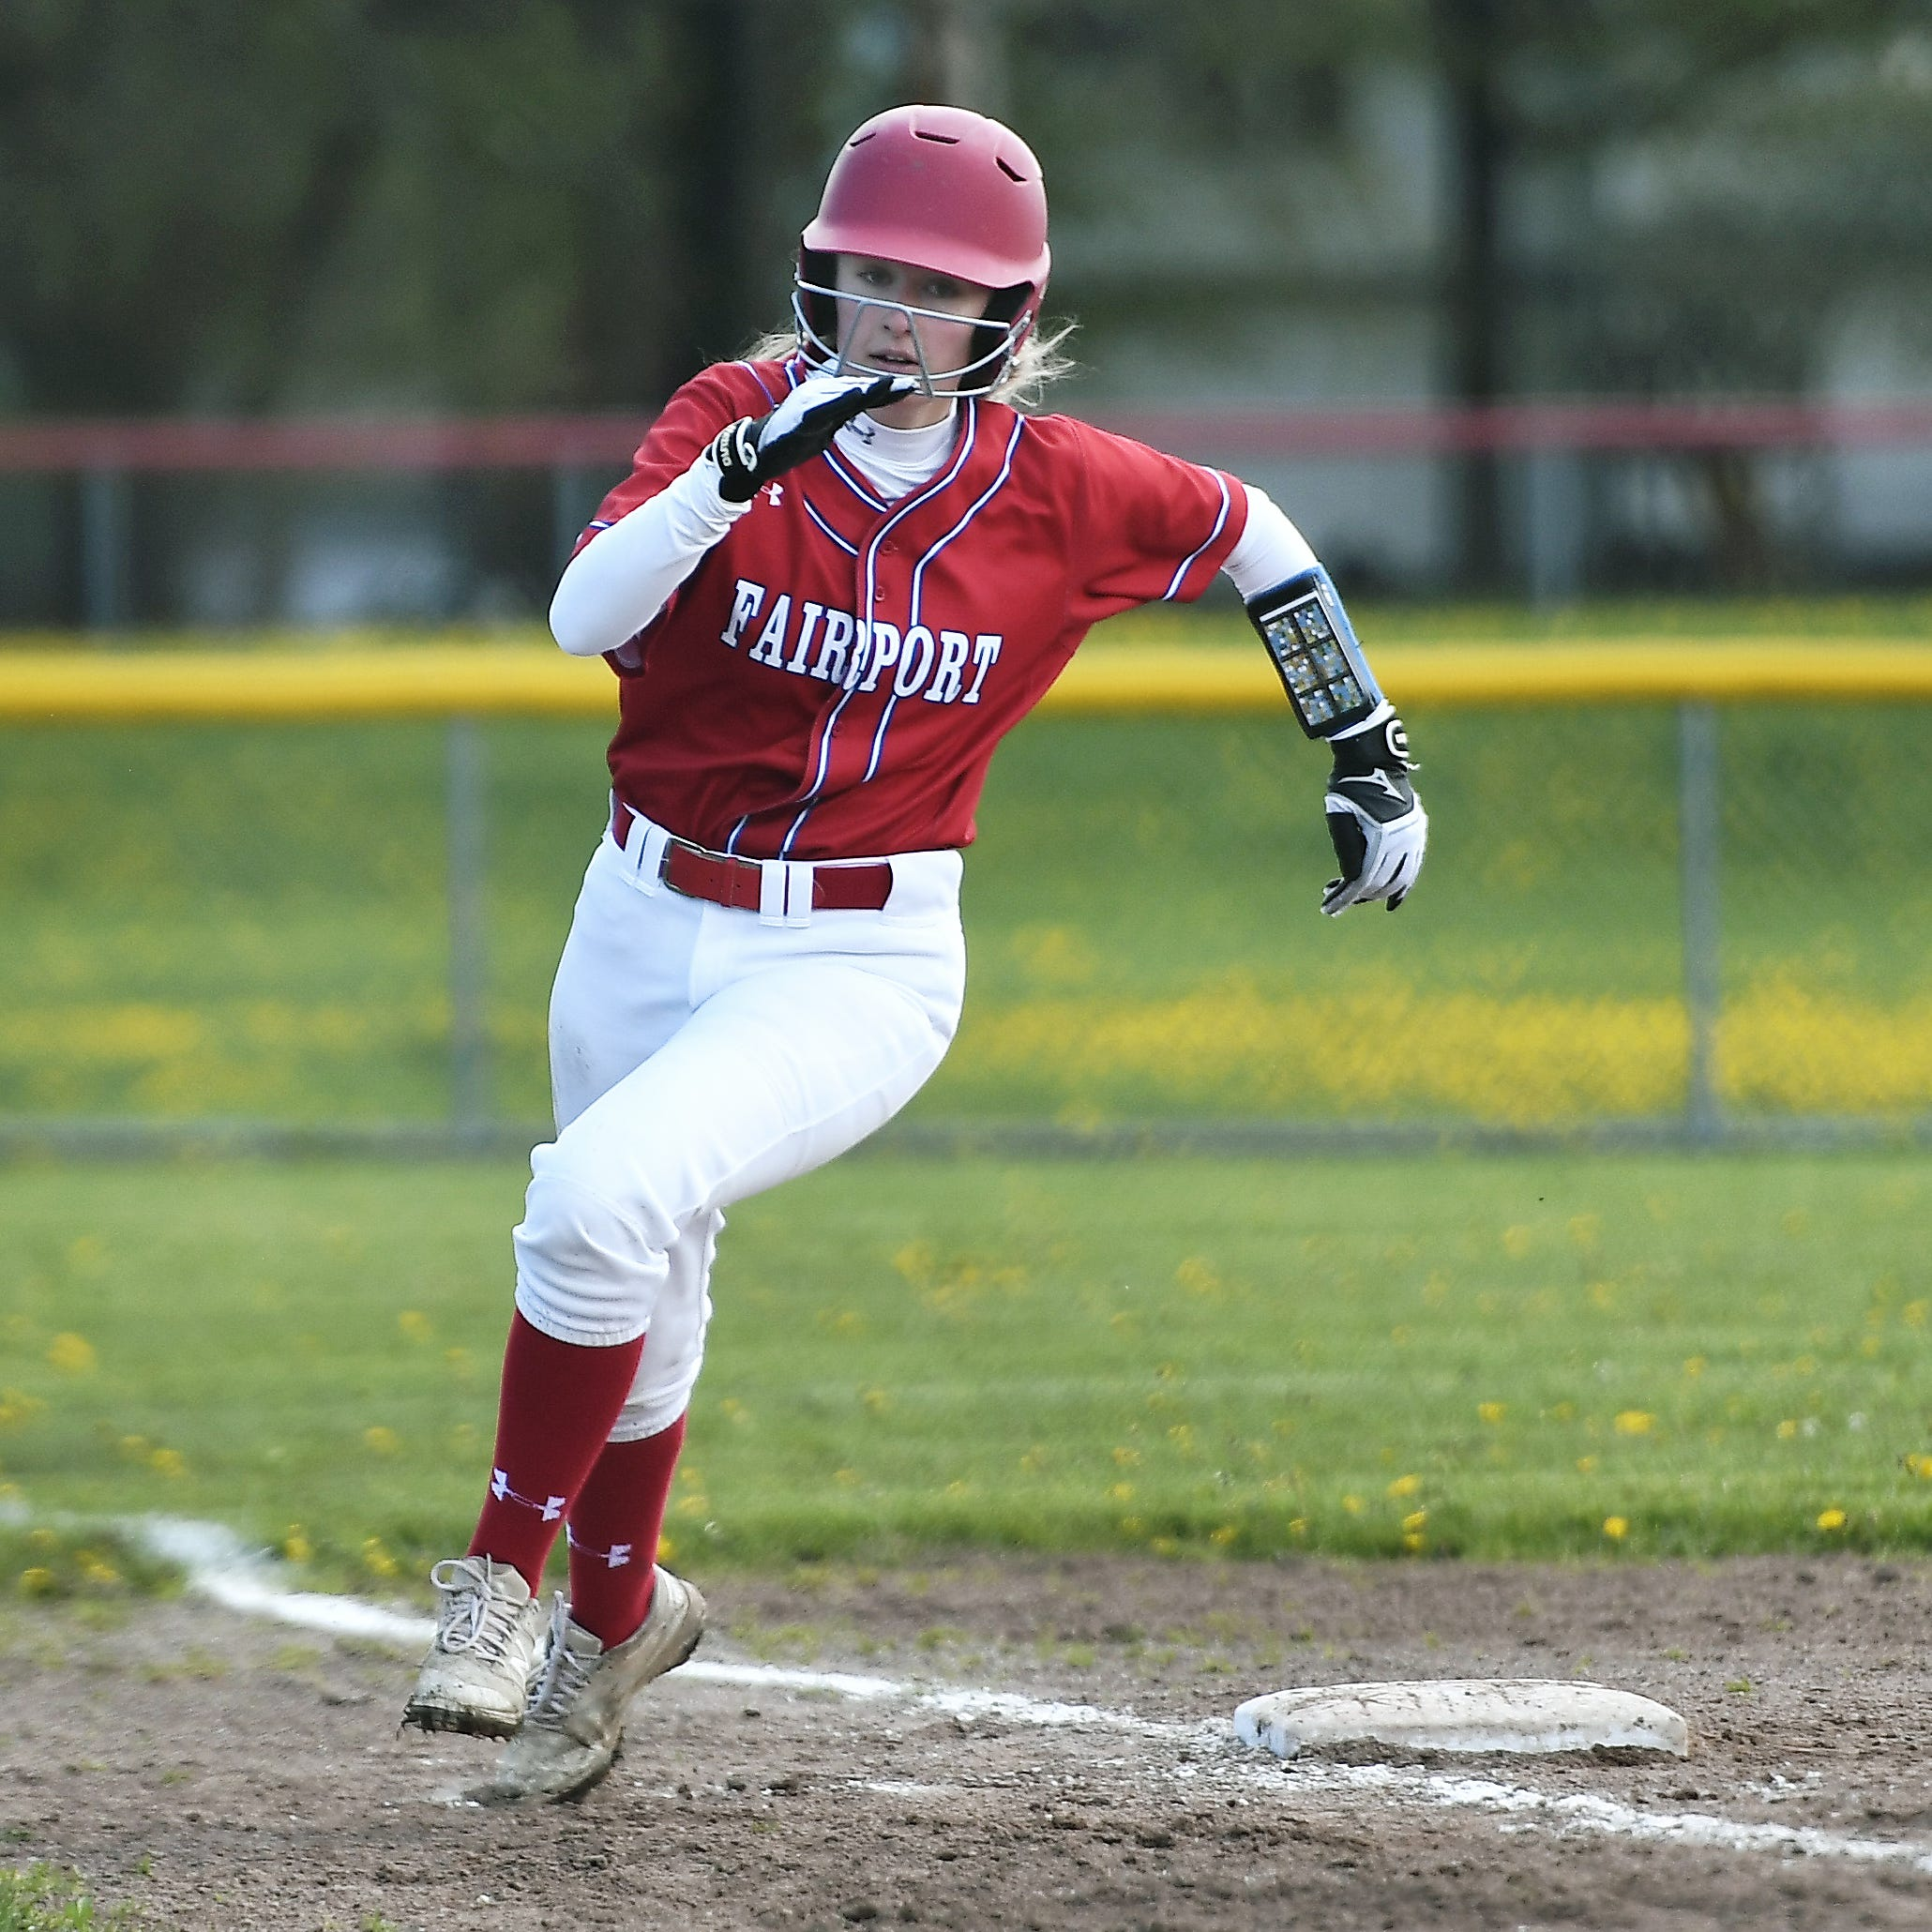 High school scores for Saturday, May 11: Find out how your favorite Section V team fared